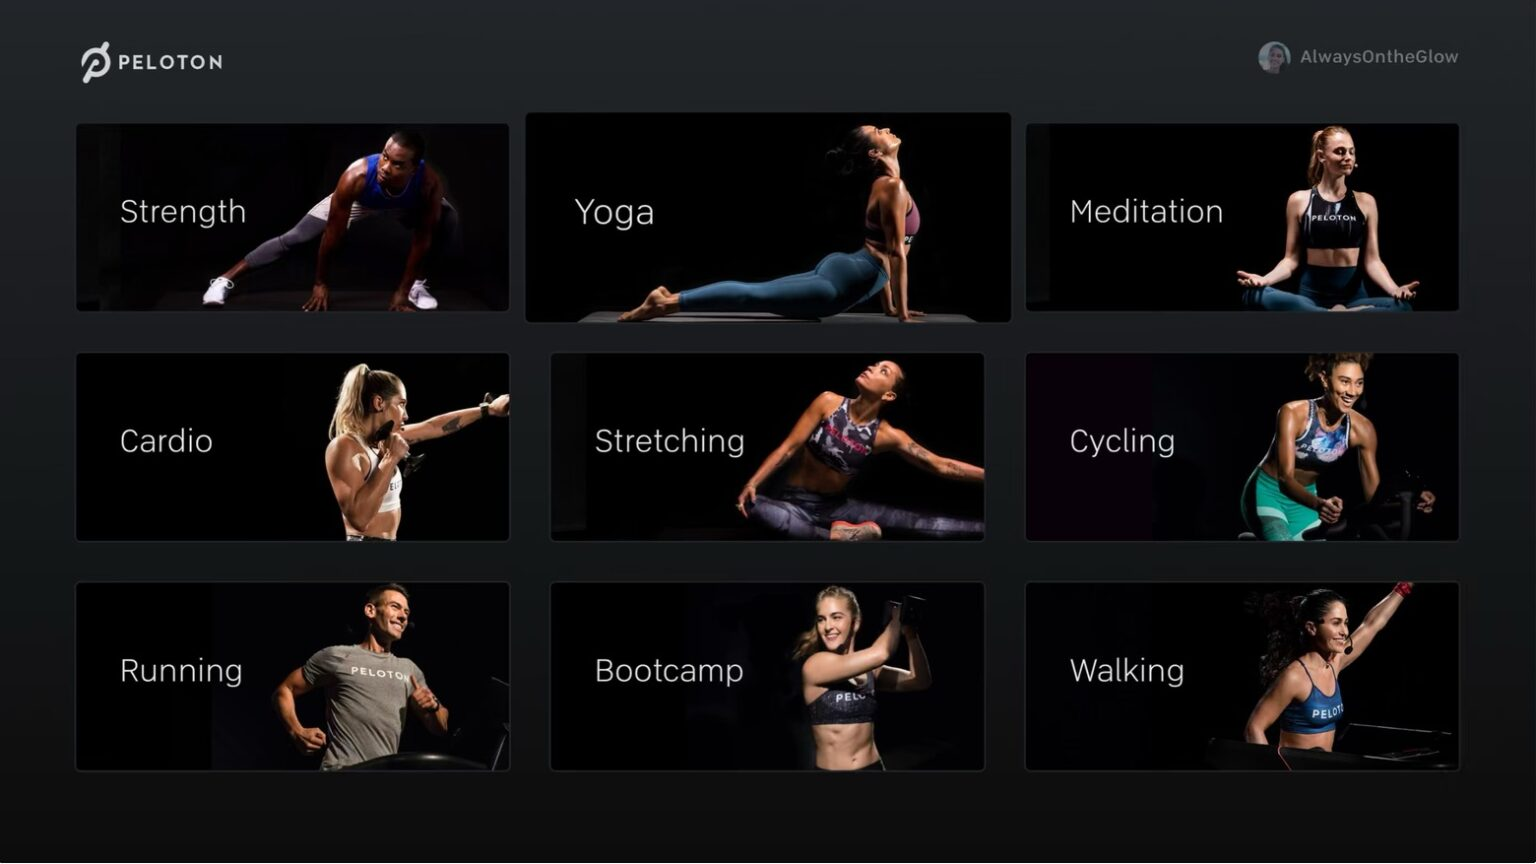 A Peloton Apple TV app debuted Tuesday